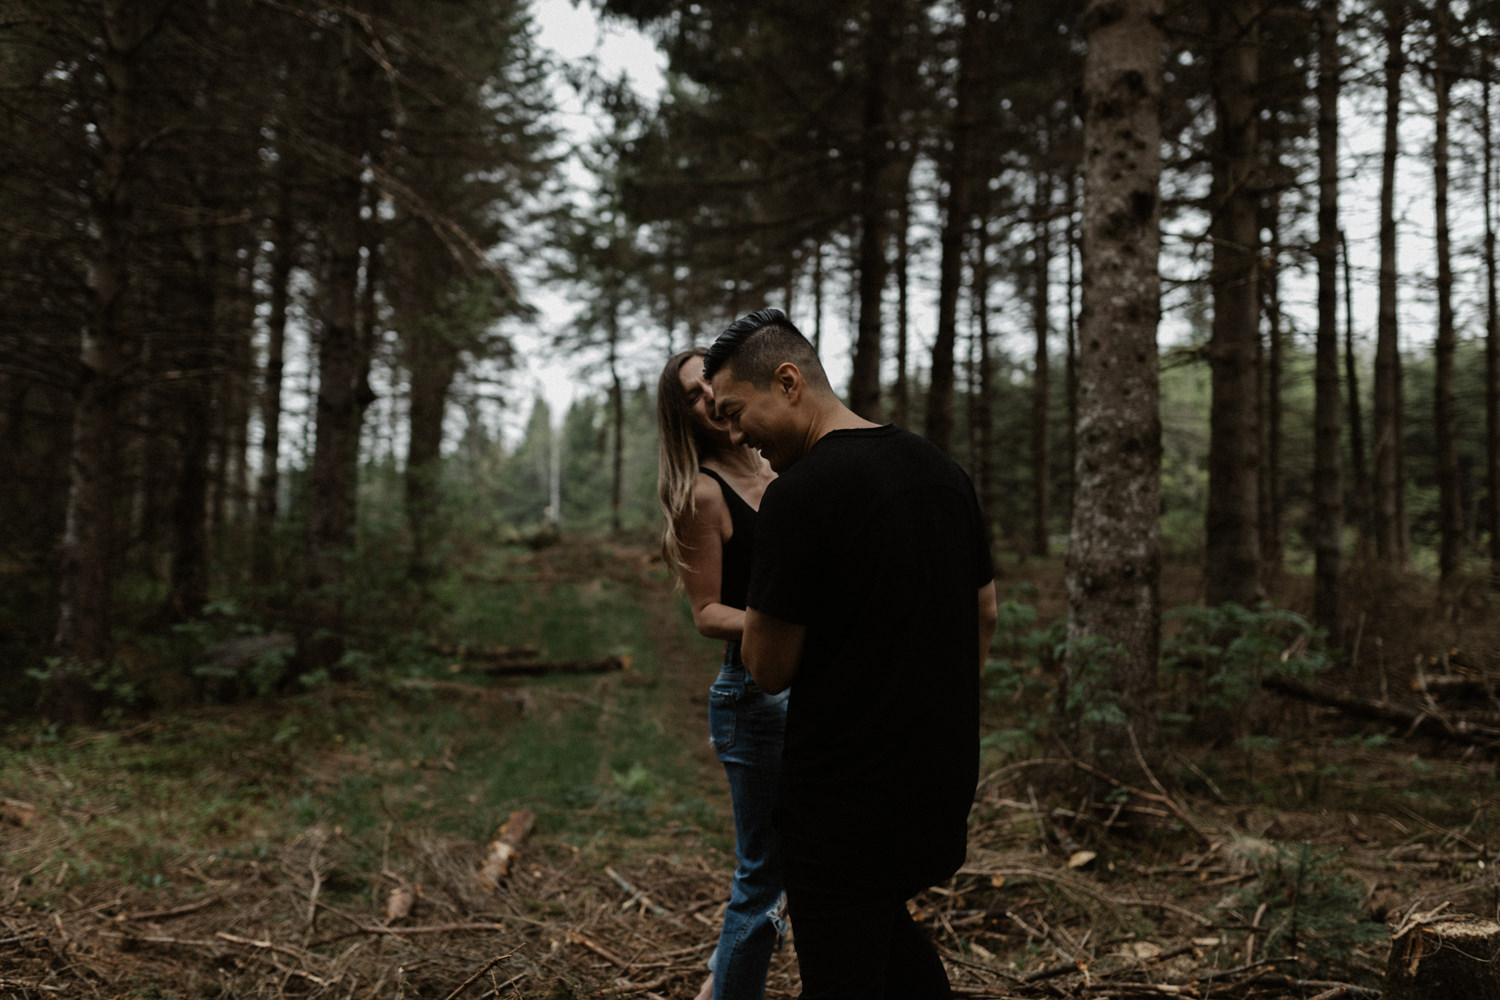 Ariane Marc-Antoine Engagement Iceland Wedding Mariage Quebec Nature Forest Foret Yanick Lesperance (20 of 73).jpg